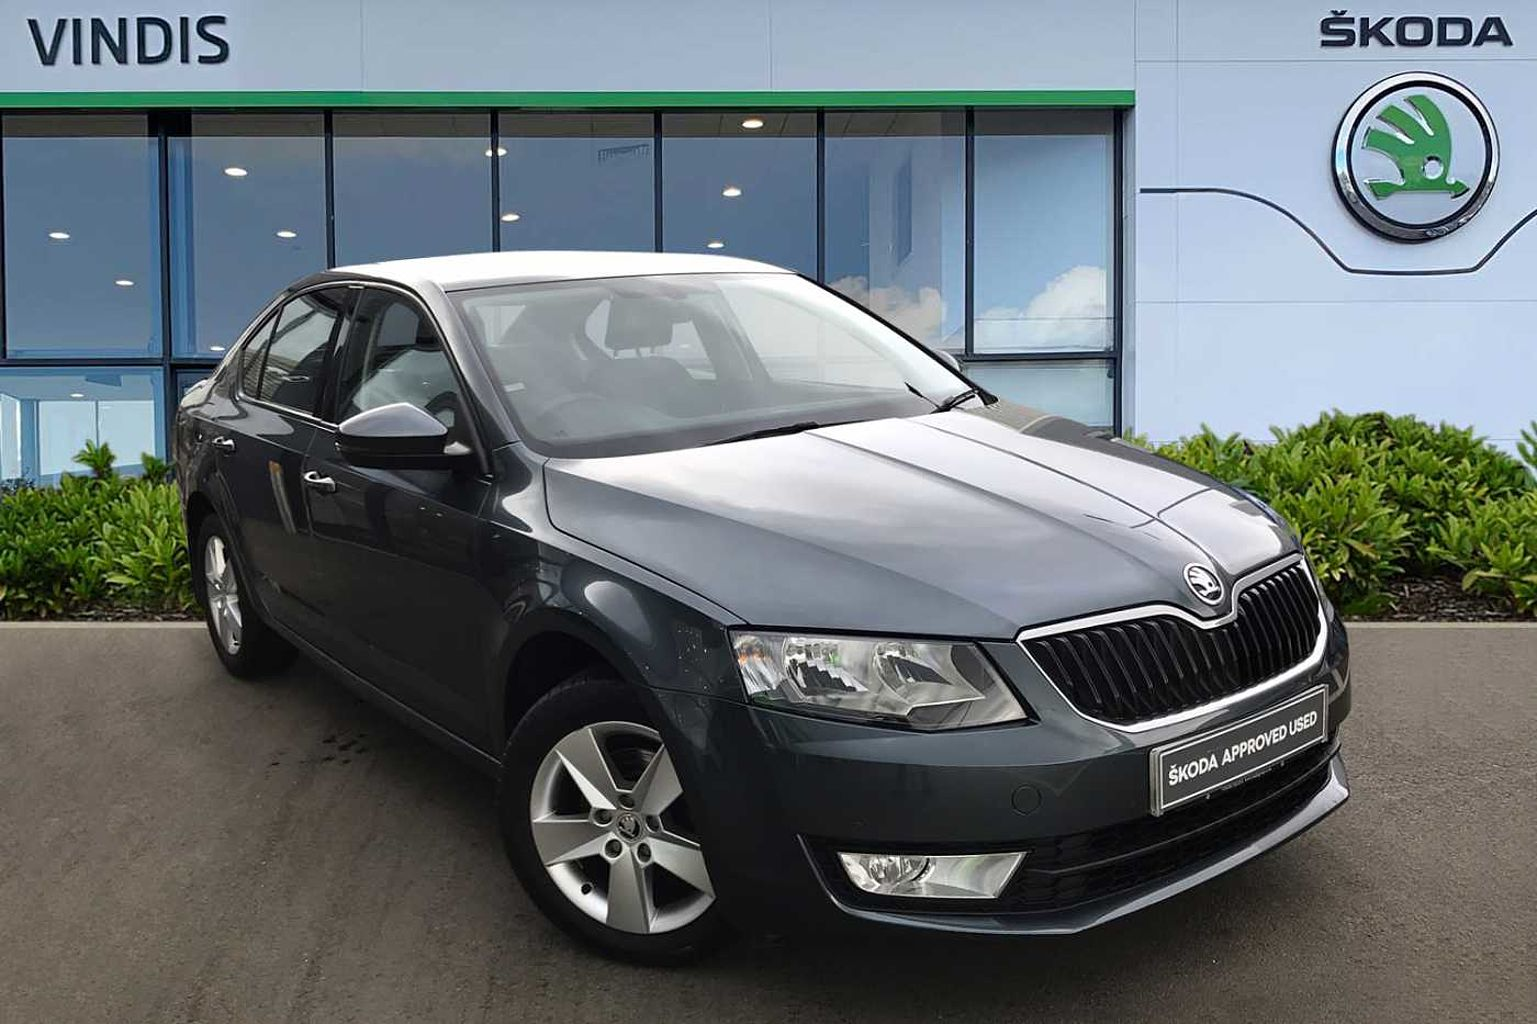 SKODA Octavia Hatch SE 1.0 TSI 115 PS 6G Man